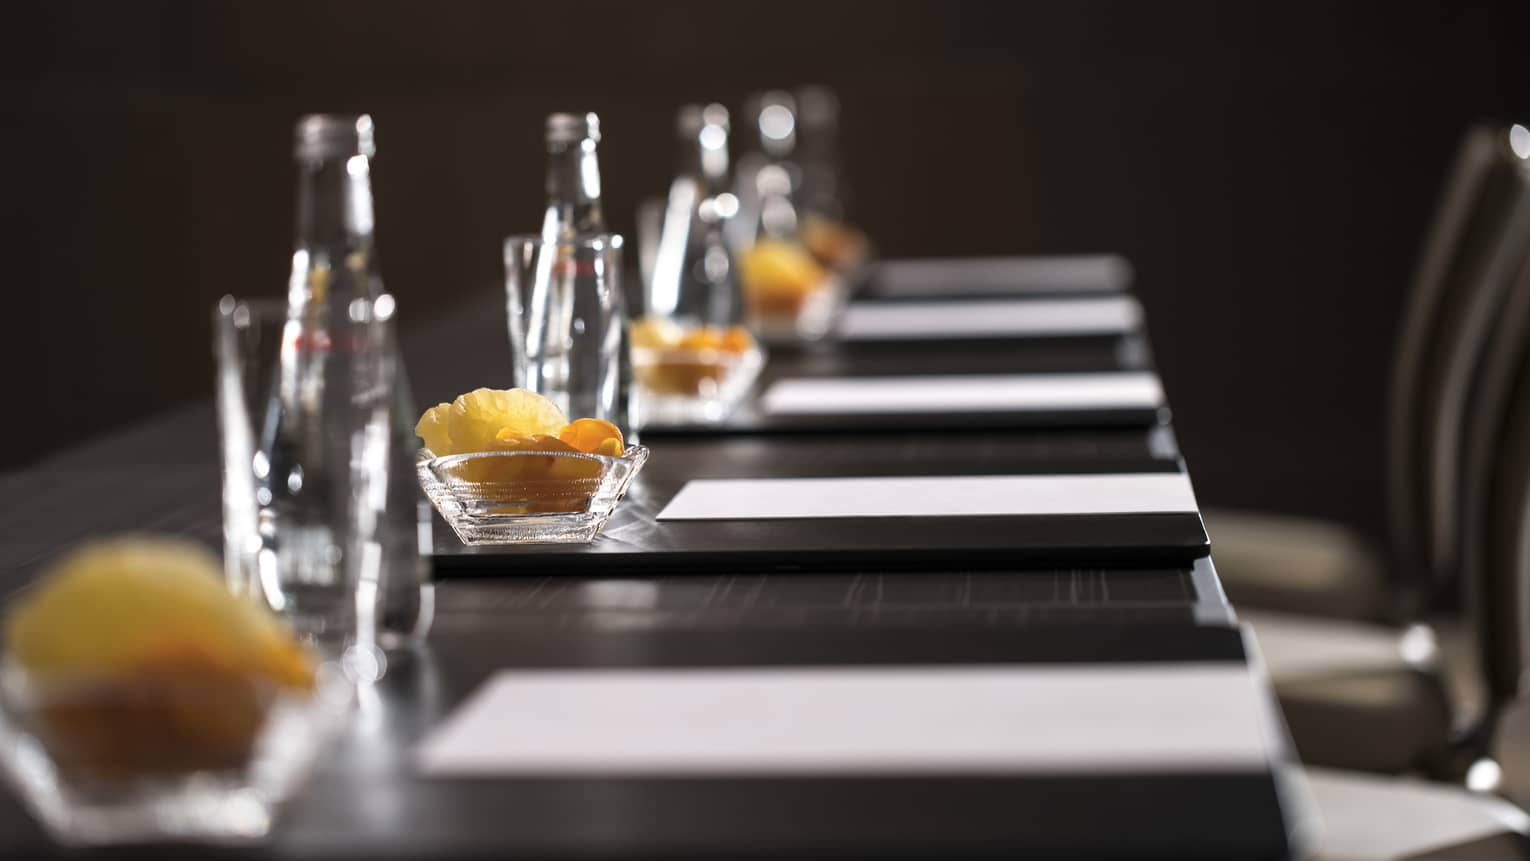 Row of glass bottles, small dishes with dried fruits, meeting agendas along boardroom table